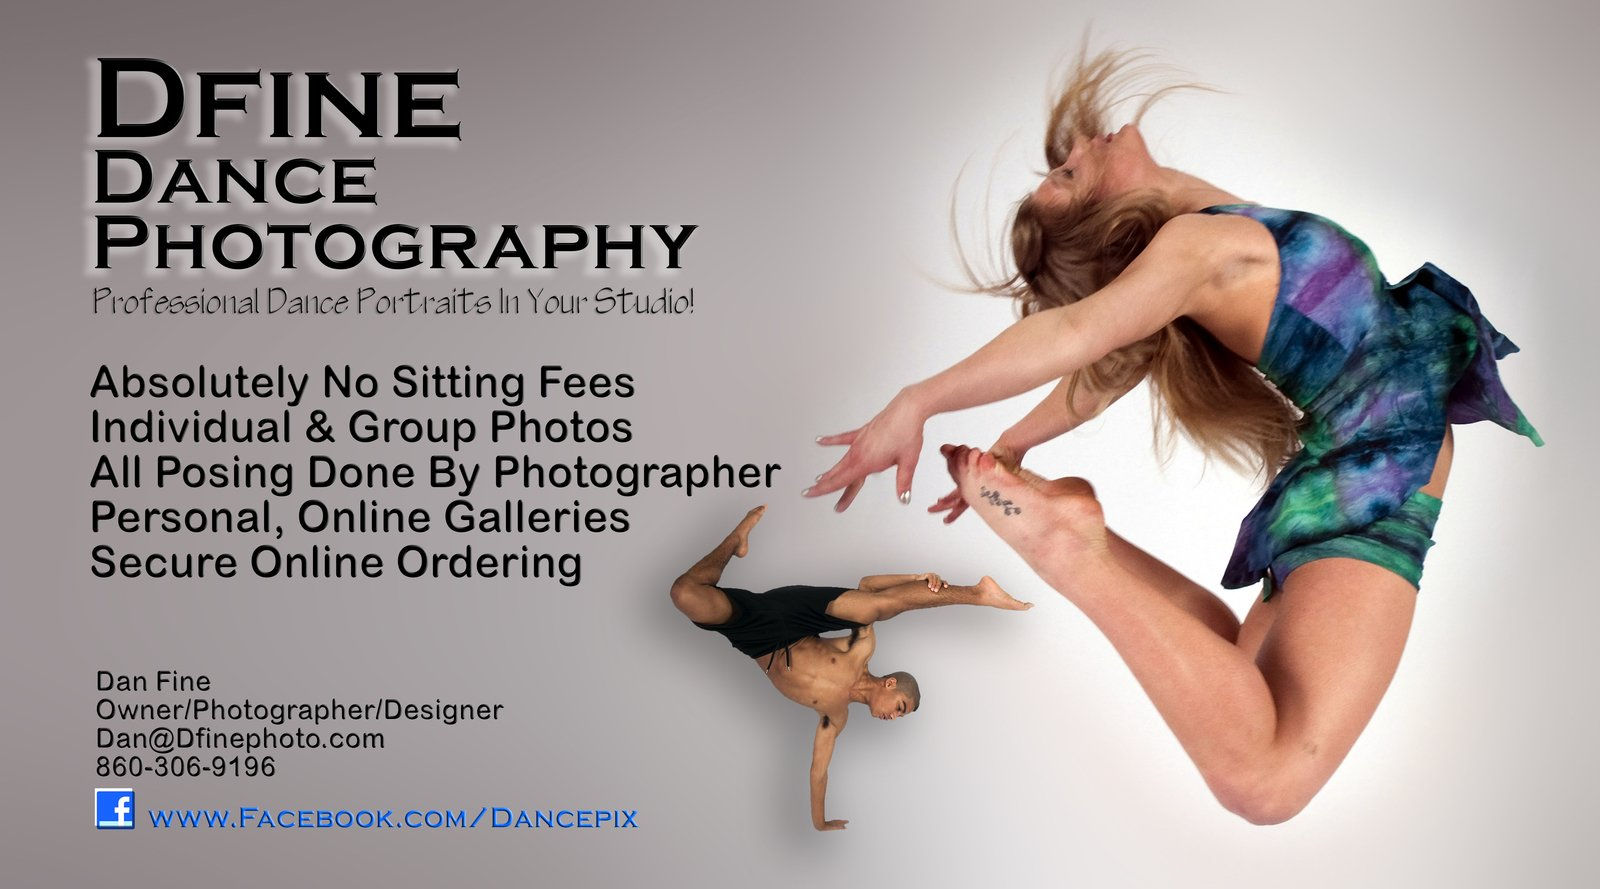 Dfine Photography